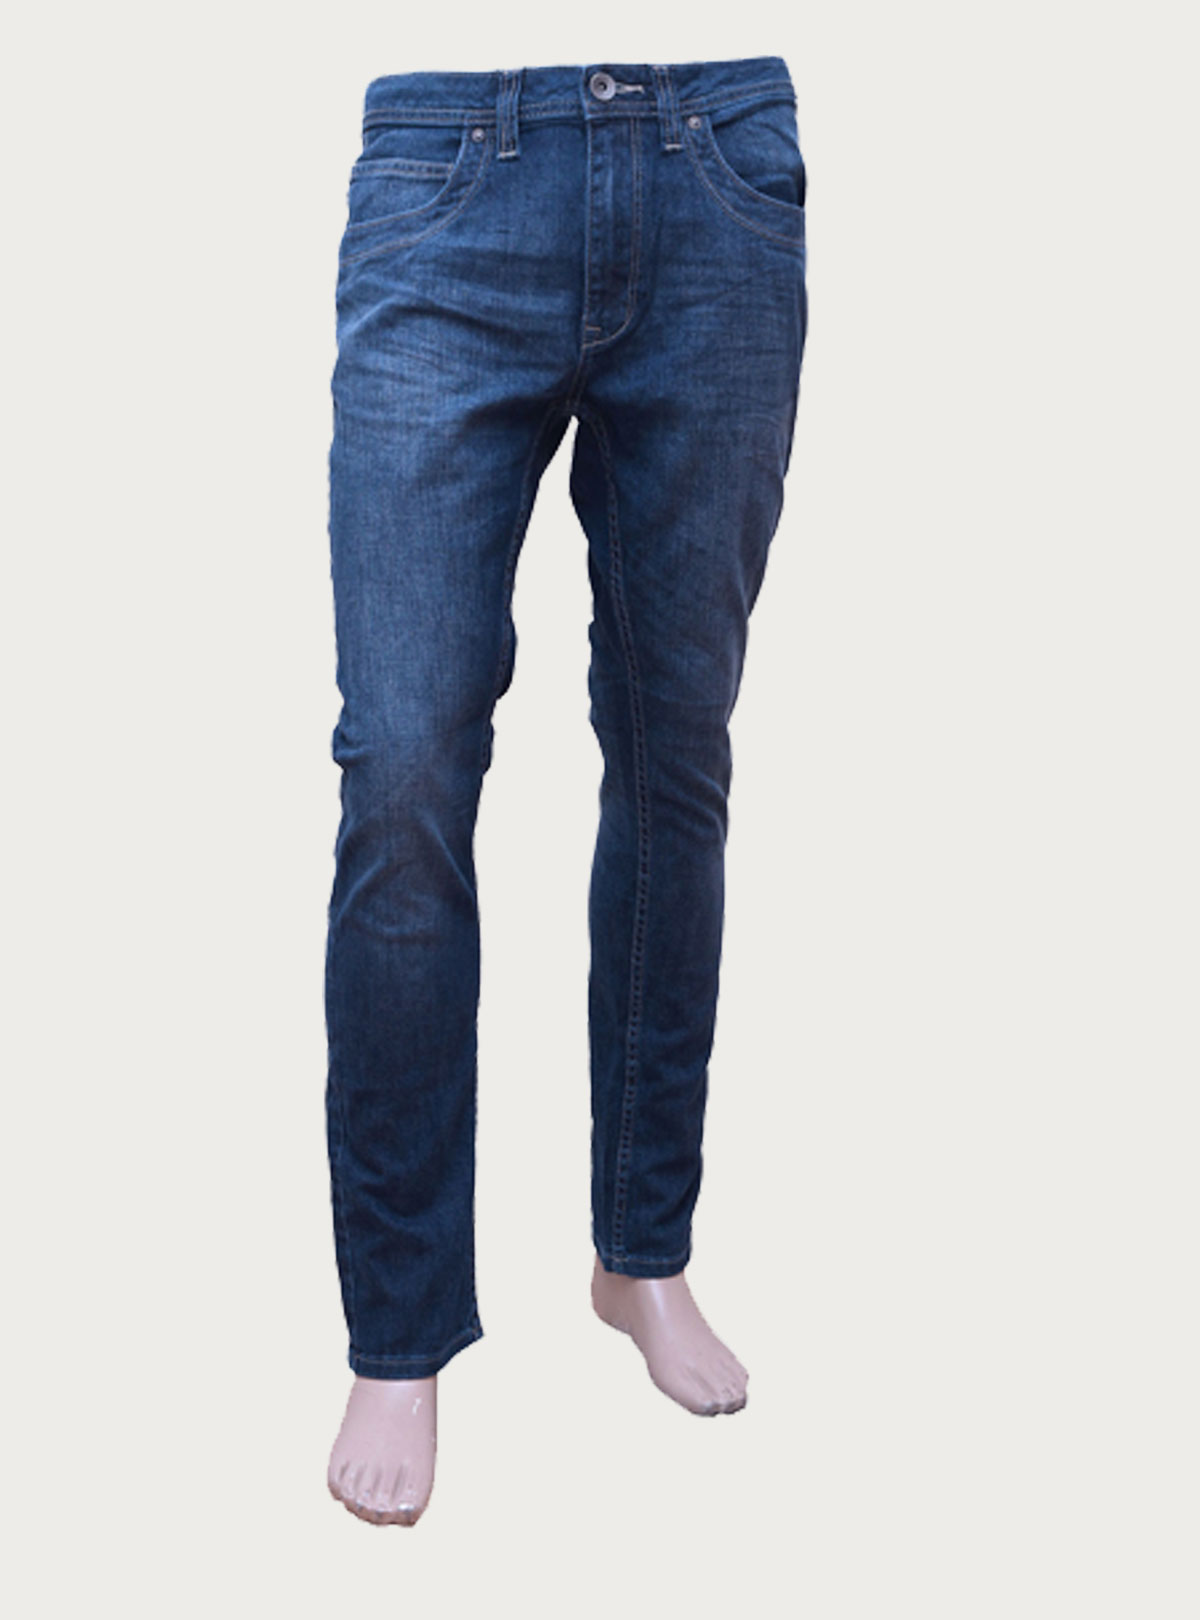 Stylish Jeans By Angelio Litrico